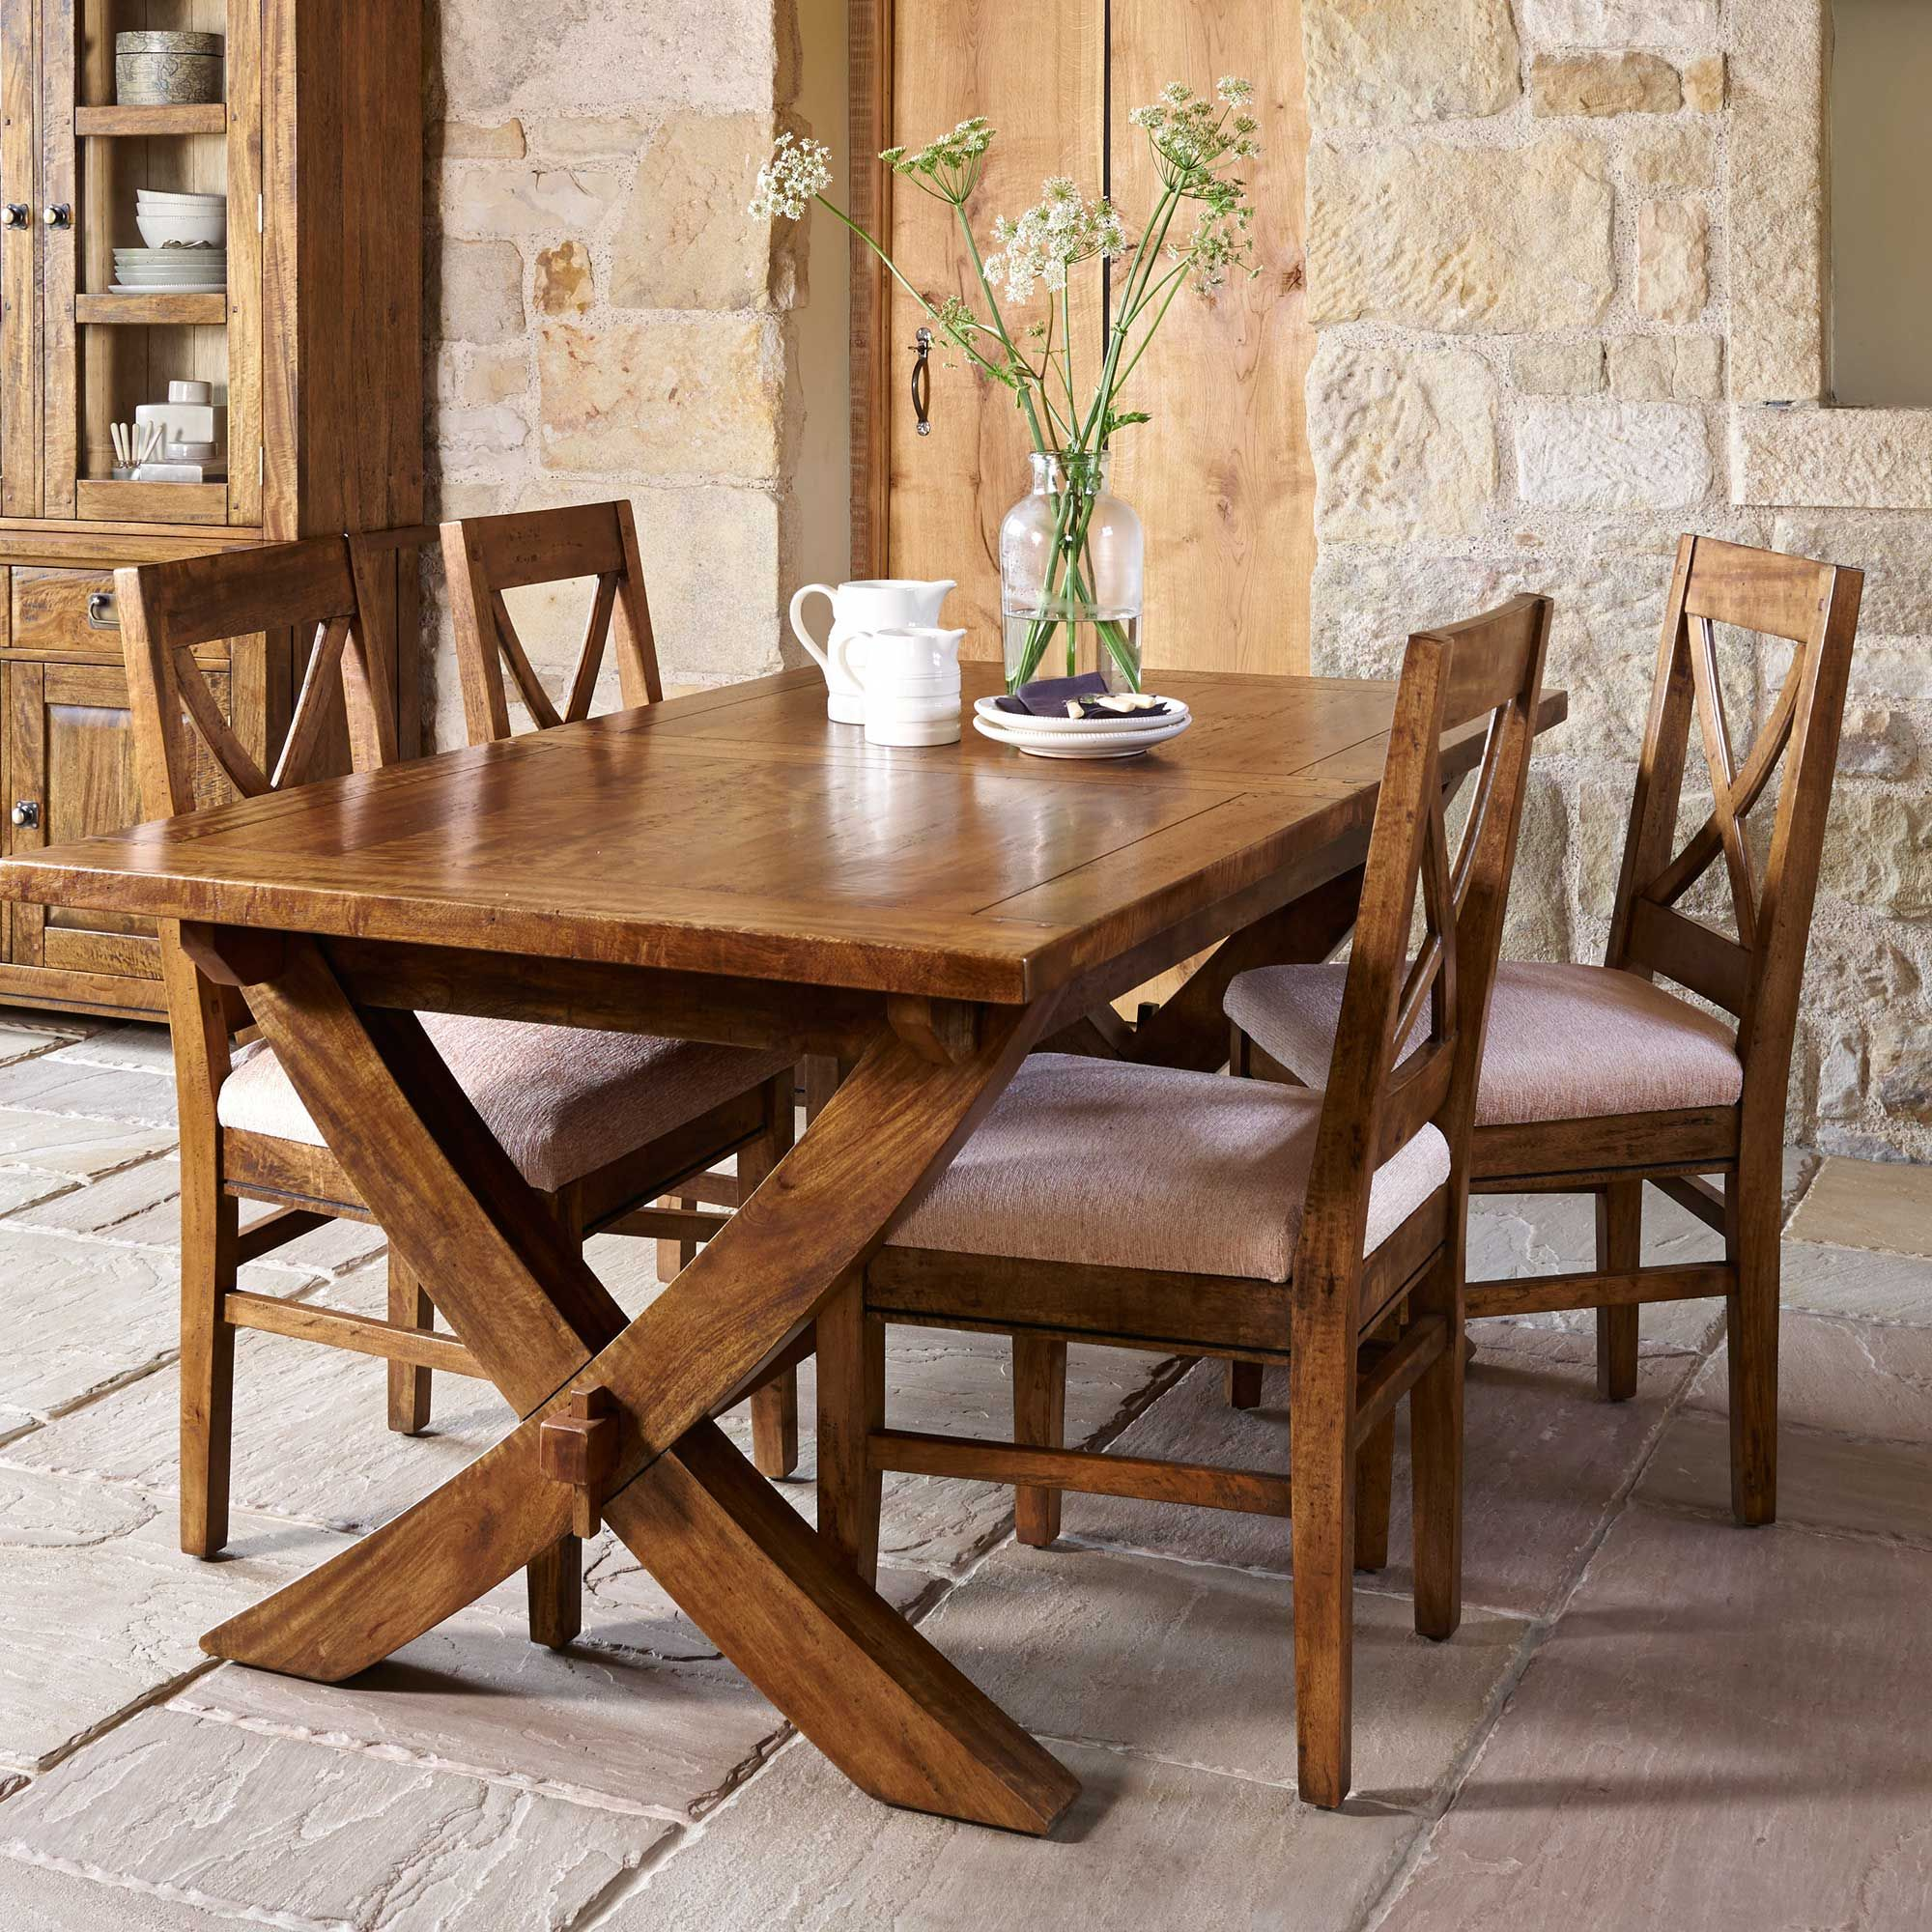 The Rustic New Frontier Dining Range Is Made From Mango Wood Which Gives  The Pieces A